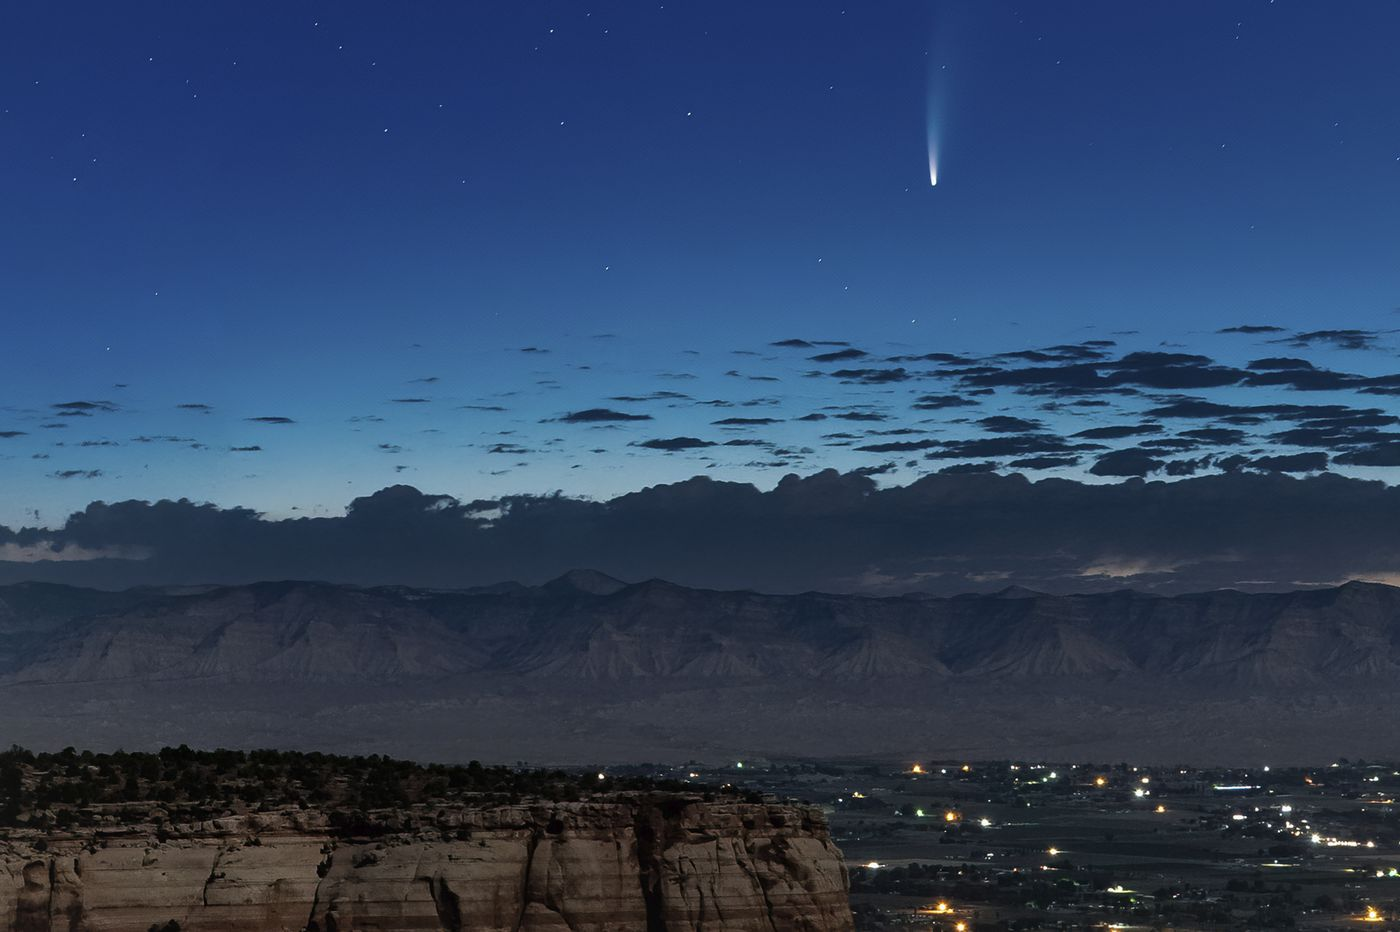 This is the time to see rare Comet Neowise, unless you're going to be around in A.D. 9020